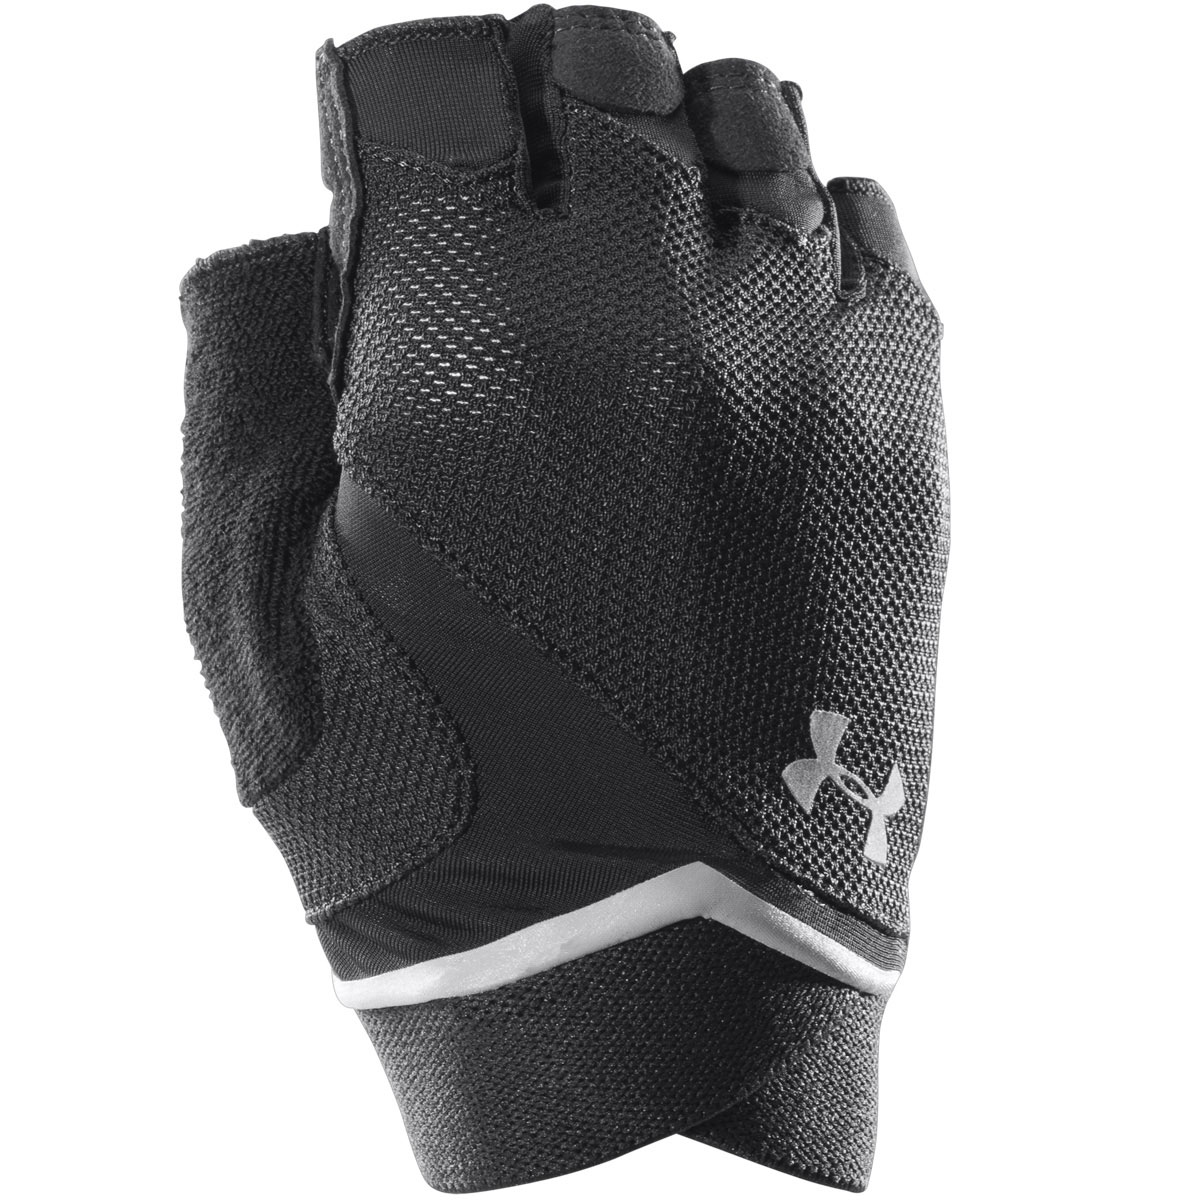 Under Armour Crossfit Gloves: Under Armour Womens UA Flux Training Gloves Gym Fitness